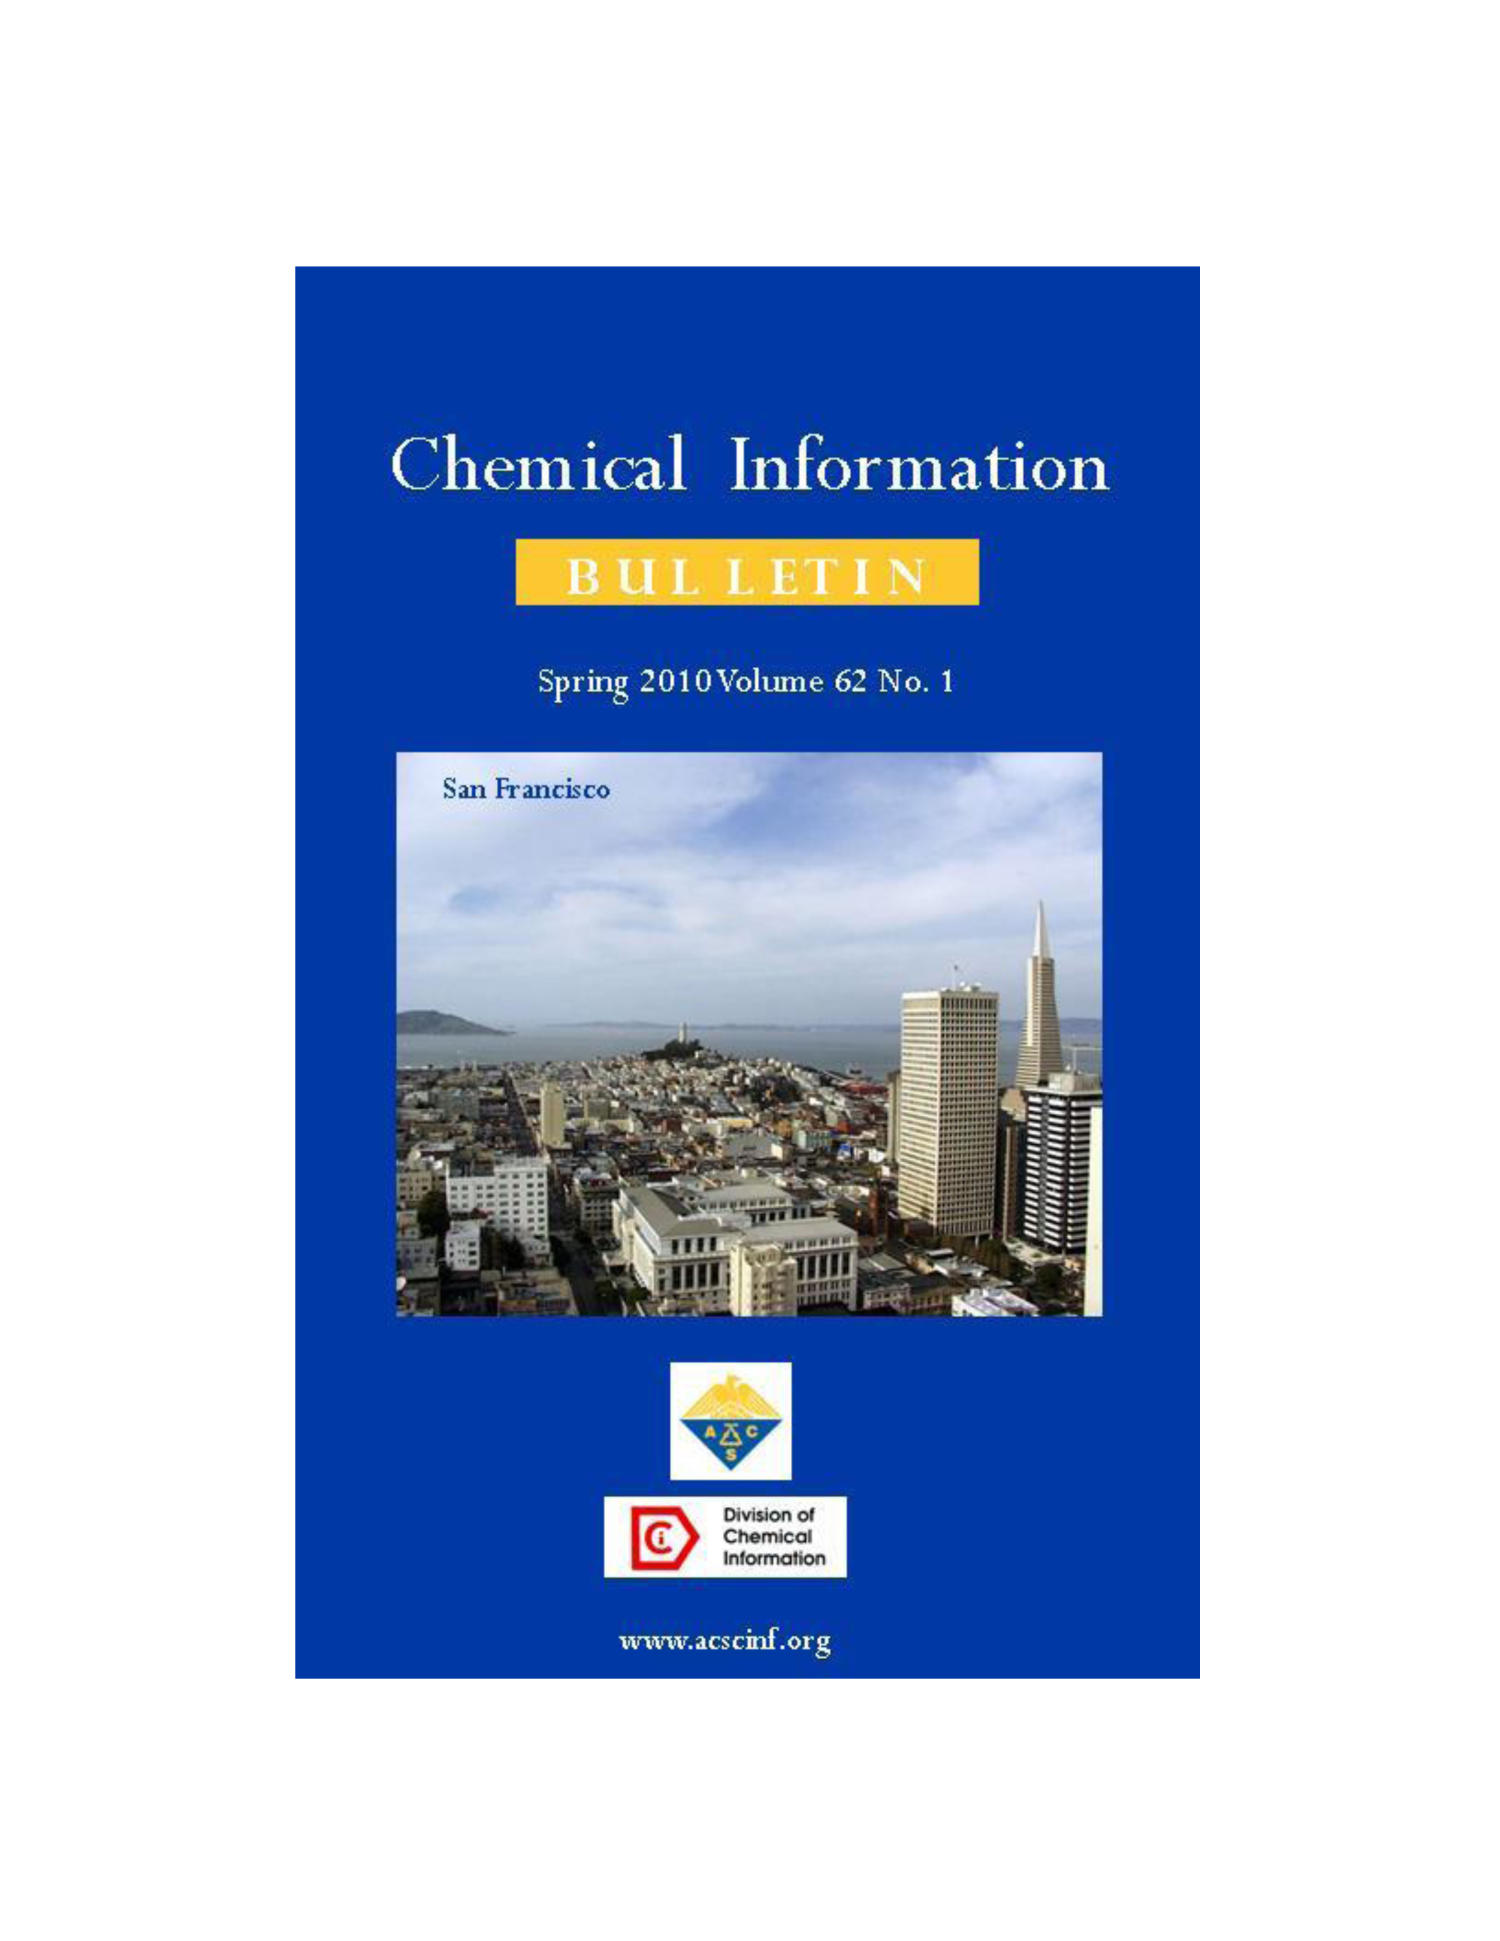 Chemical Information Bulletin, Volume 62, Number 1, Spring 2010                                                                                                      Front Cover